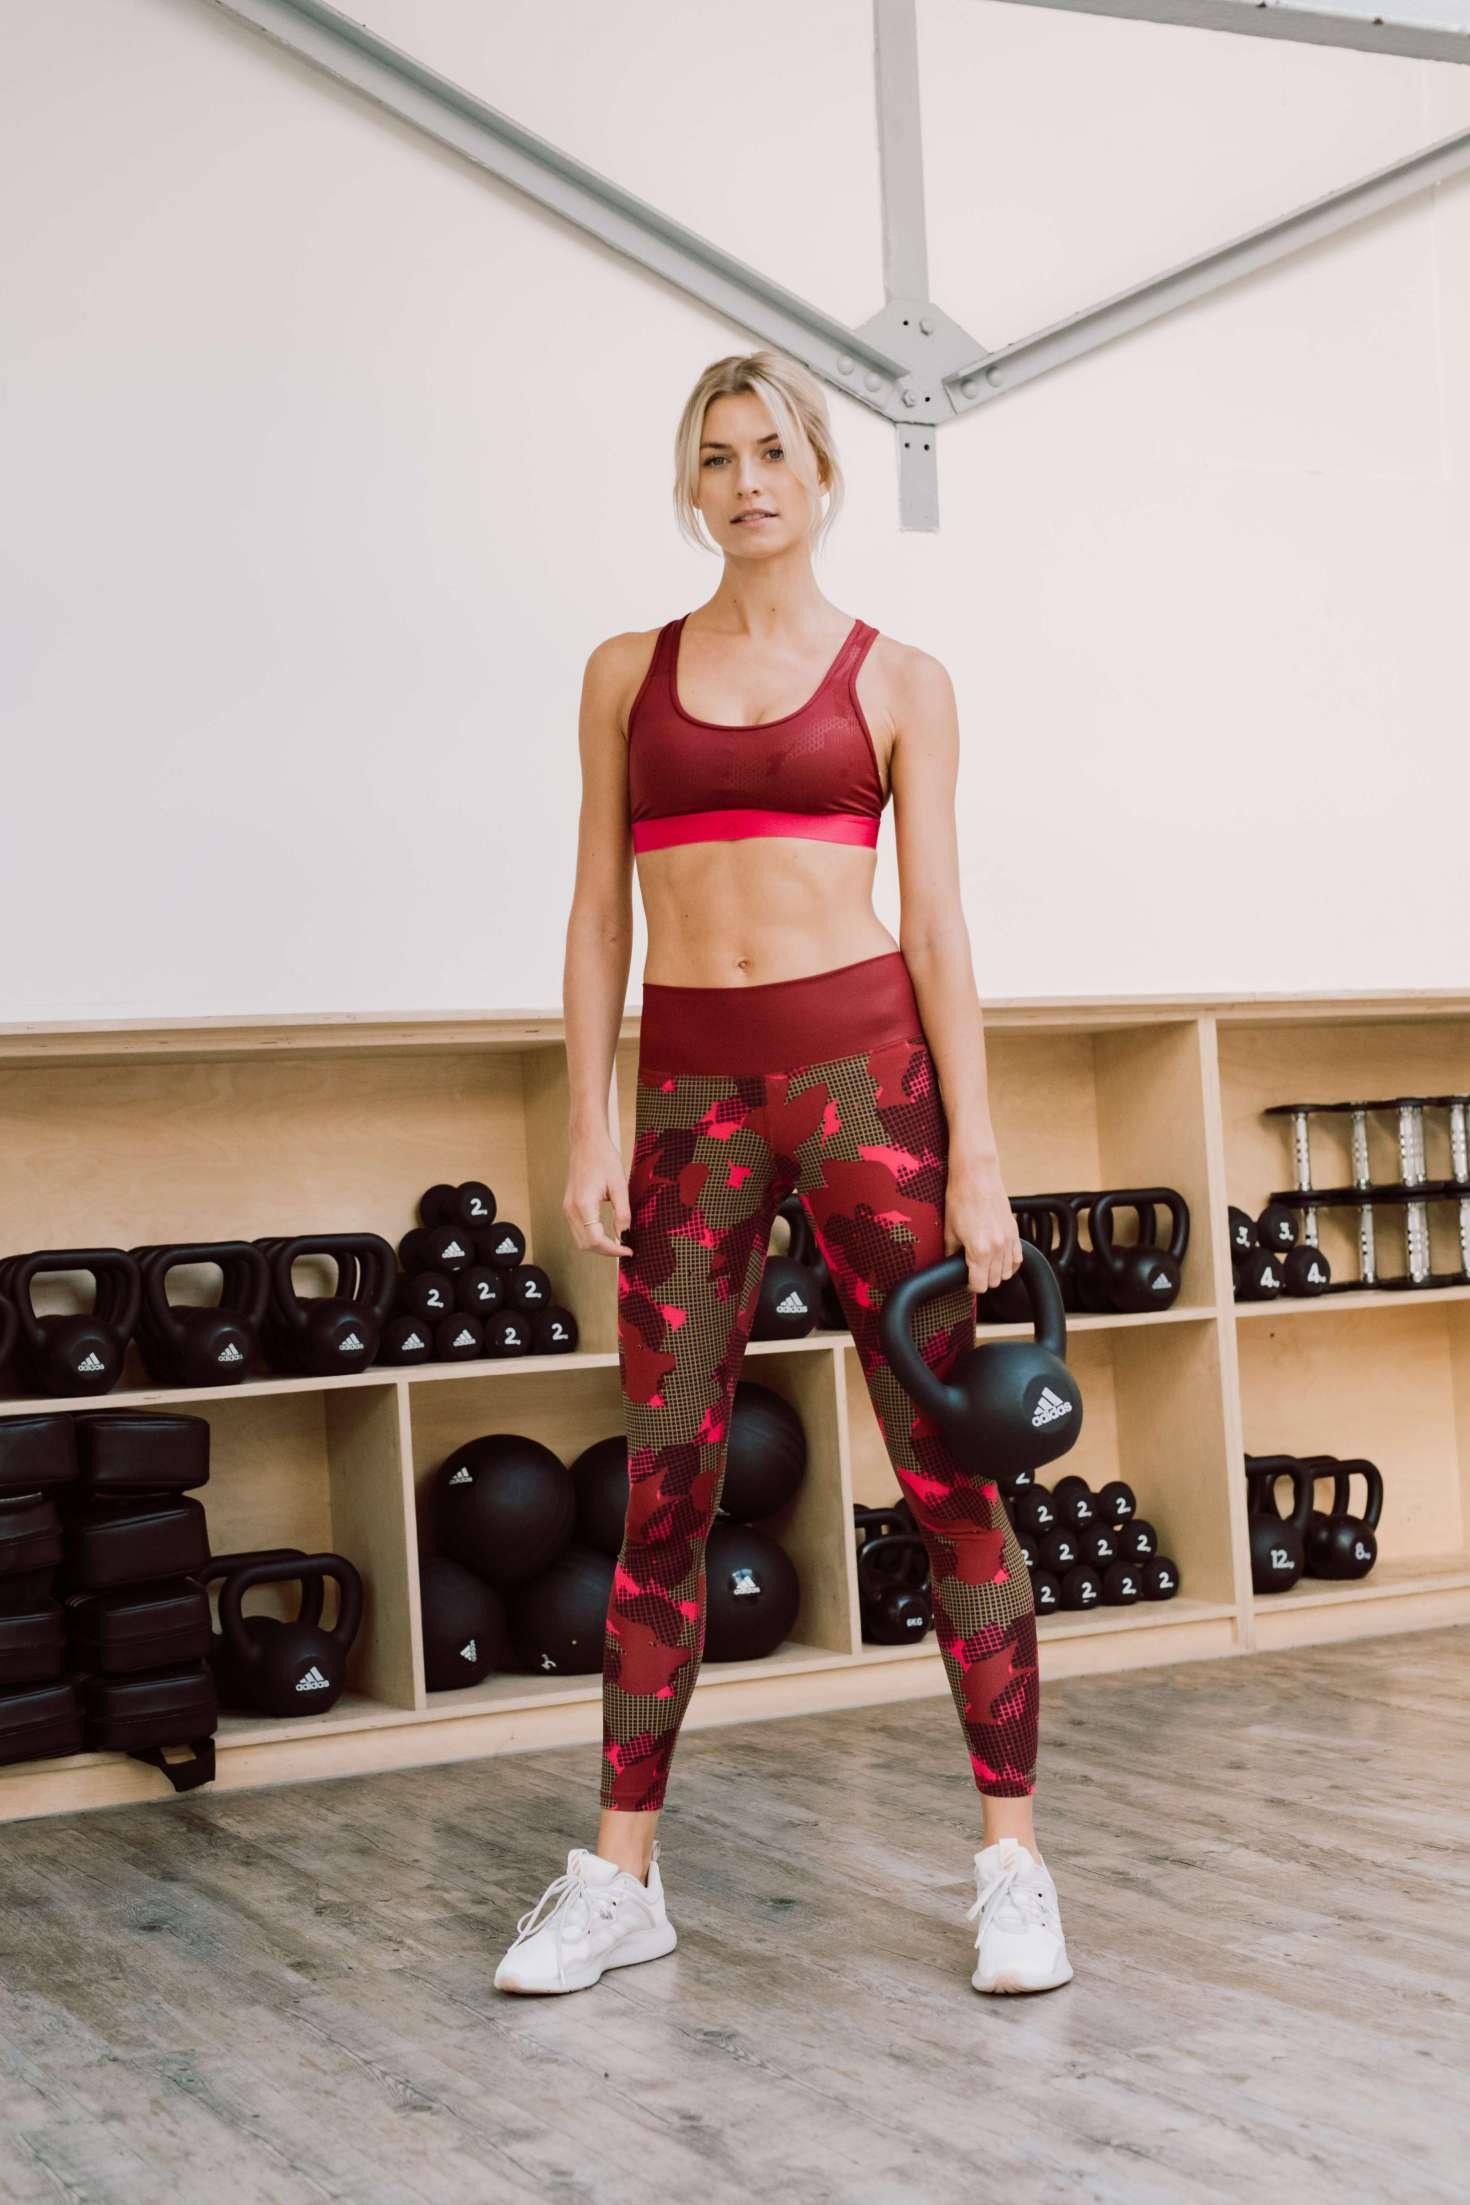 Lena Gercke Adidas Statement Collection 2019 02 Gotceleb